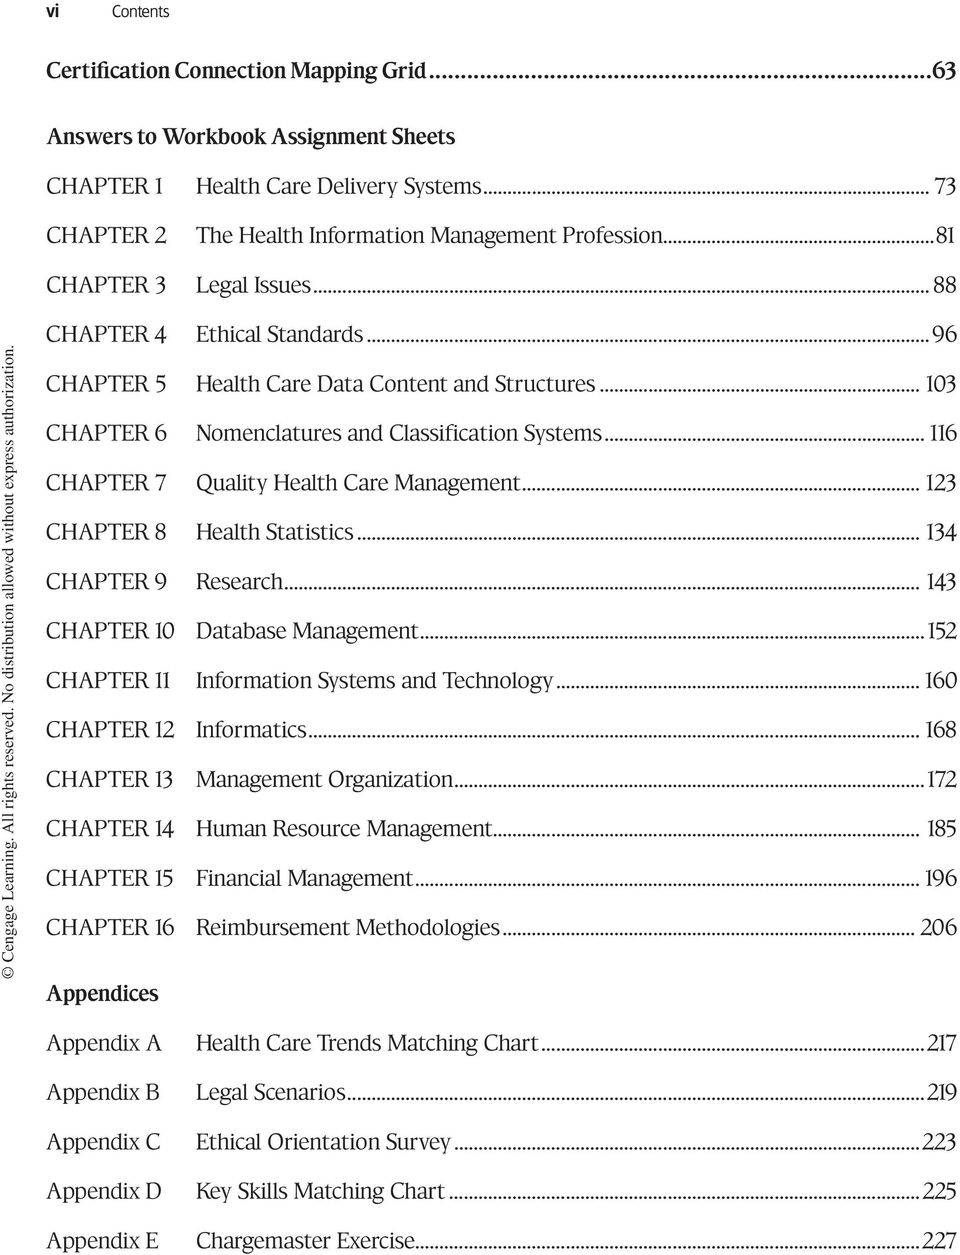 ..116 Chapter 7 Quality Health Care Management... 123 Chapter 8 Health Statistics... 134 Chapter 9 Research... 143 Chapter 10 Database Management...152 Chapter 11 Information Systems and Technology.